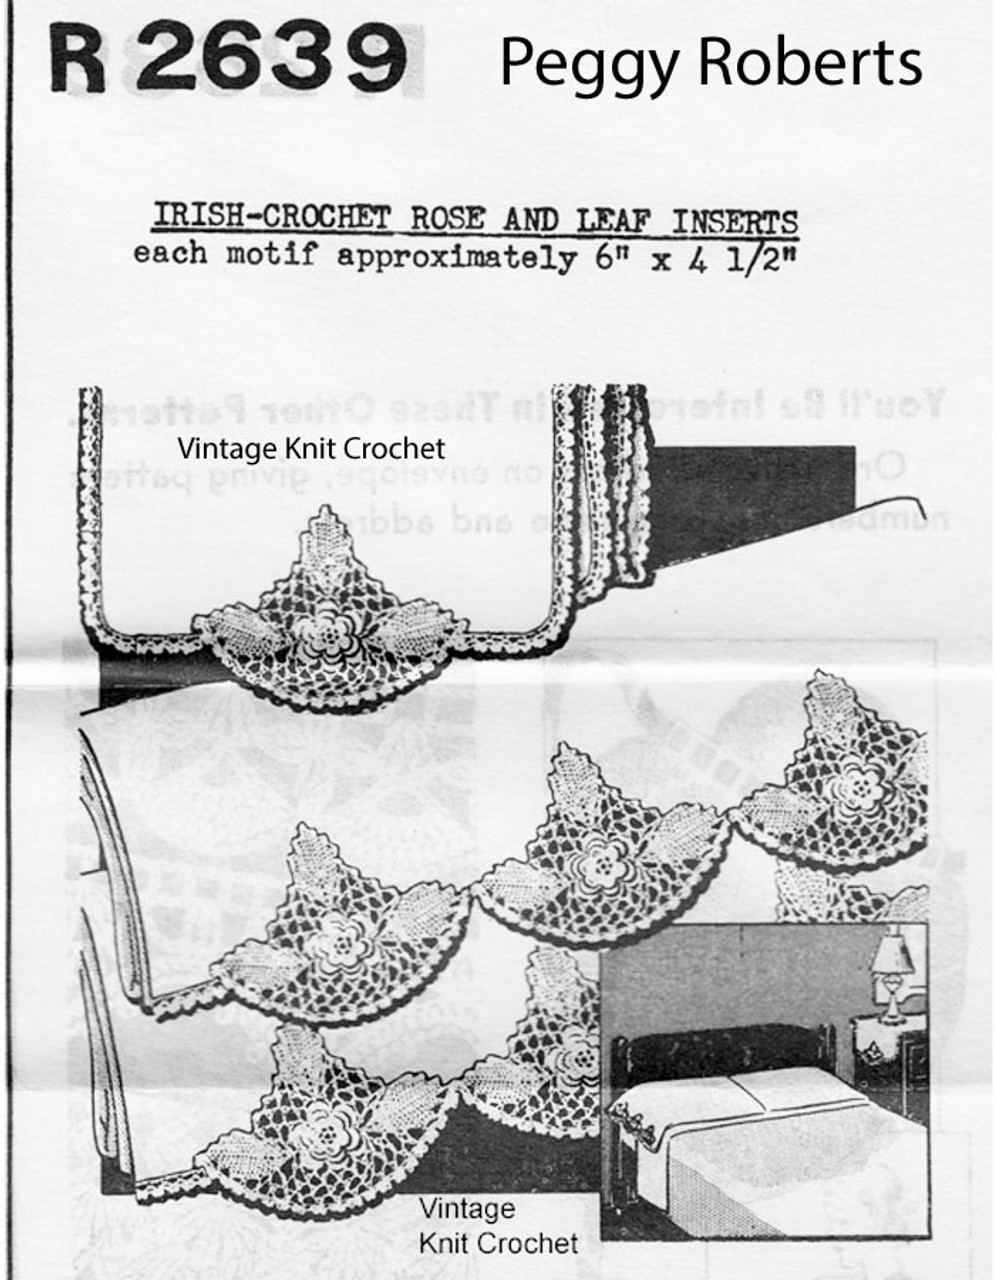 Irish Rose Crochet Insert Pattern, Peggy Roberts 2639